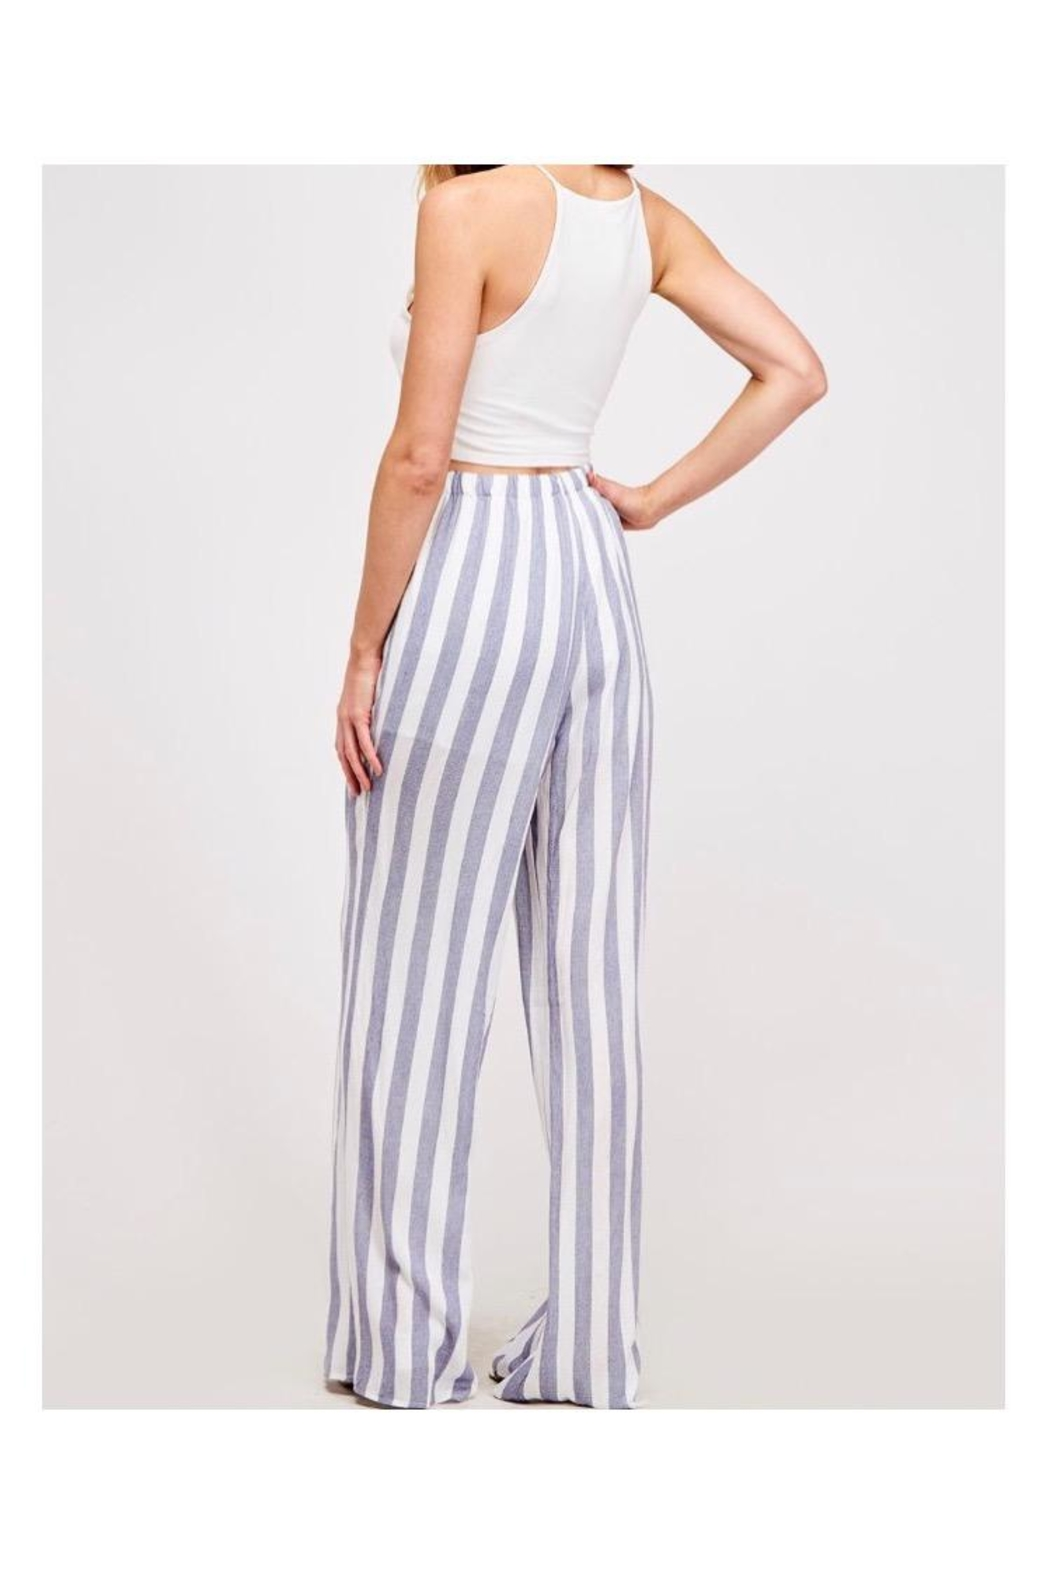 Fantastic Fawn Navy/white Striped Pants - Front Full Image